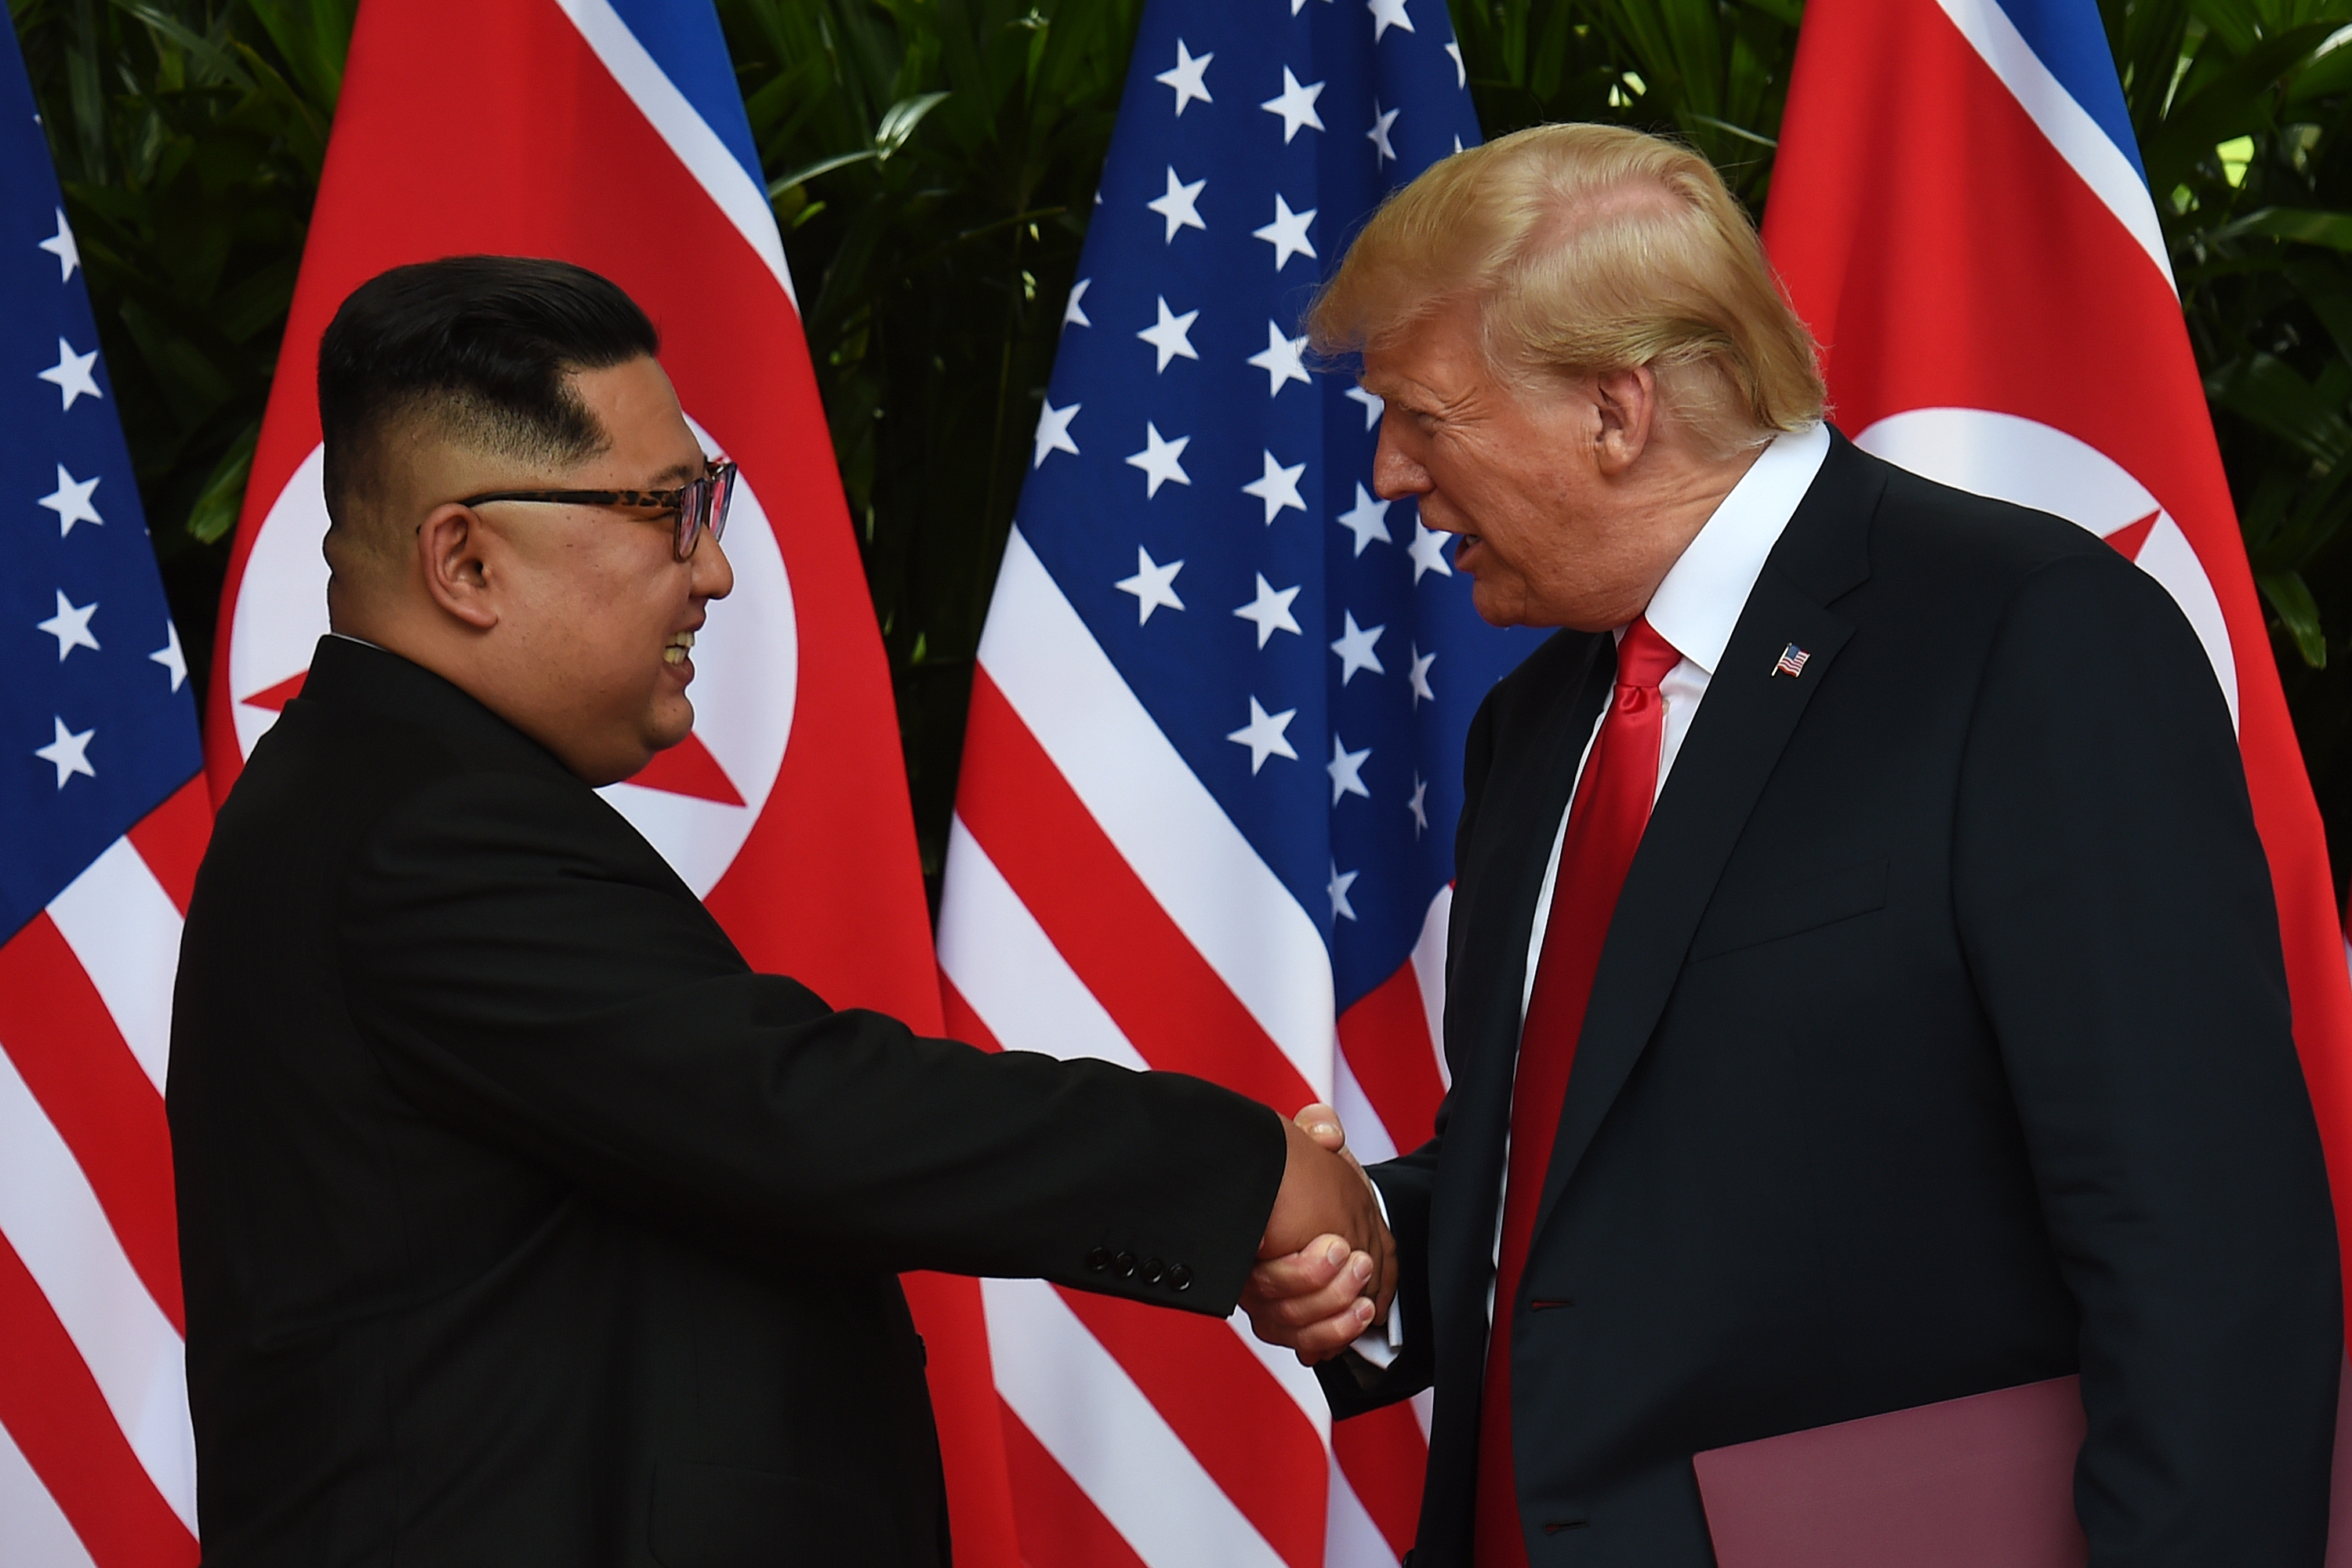 North Korea's leader Kim Jong Un (L) shakes hands with U.S. President Donald Trump after taking part in a signing ceremony at the end of their historic U.S.-North Korea summit, at the Capella Hotel on Sentosa island in Singapore on June 12, 2018.